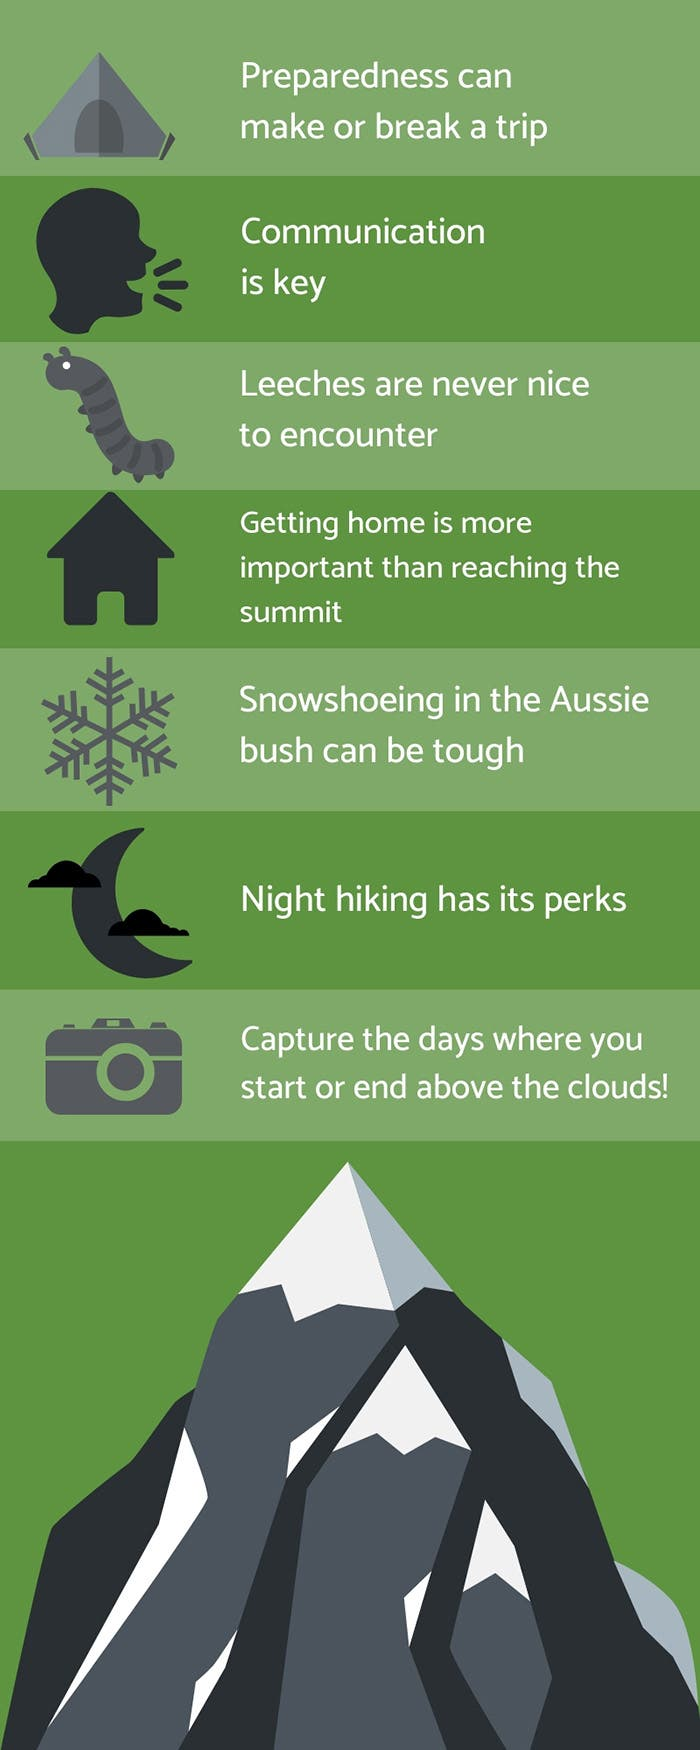 List of 6 Lessons from Mt. Feathertop